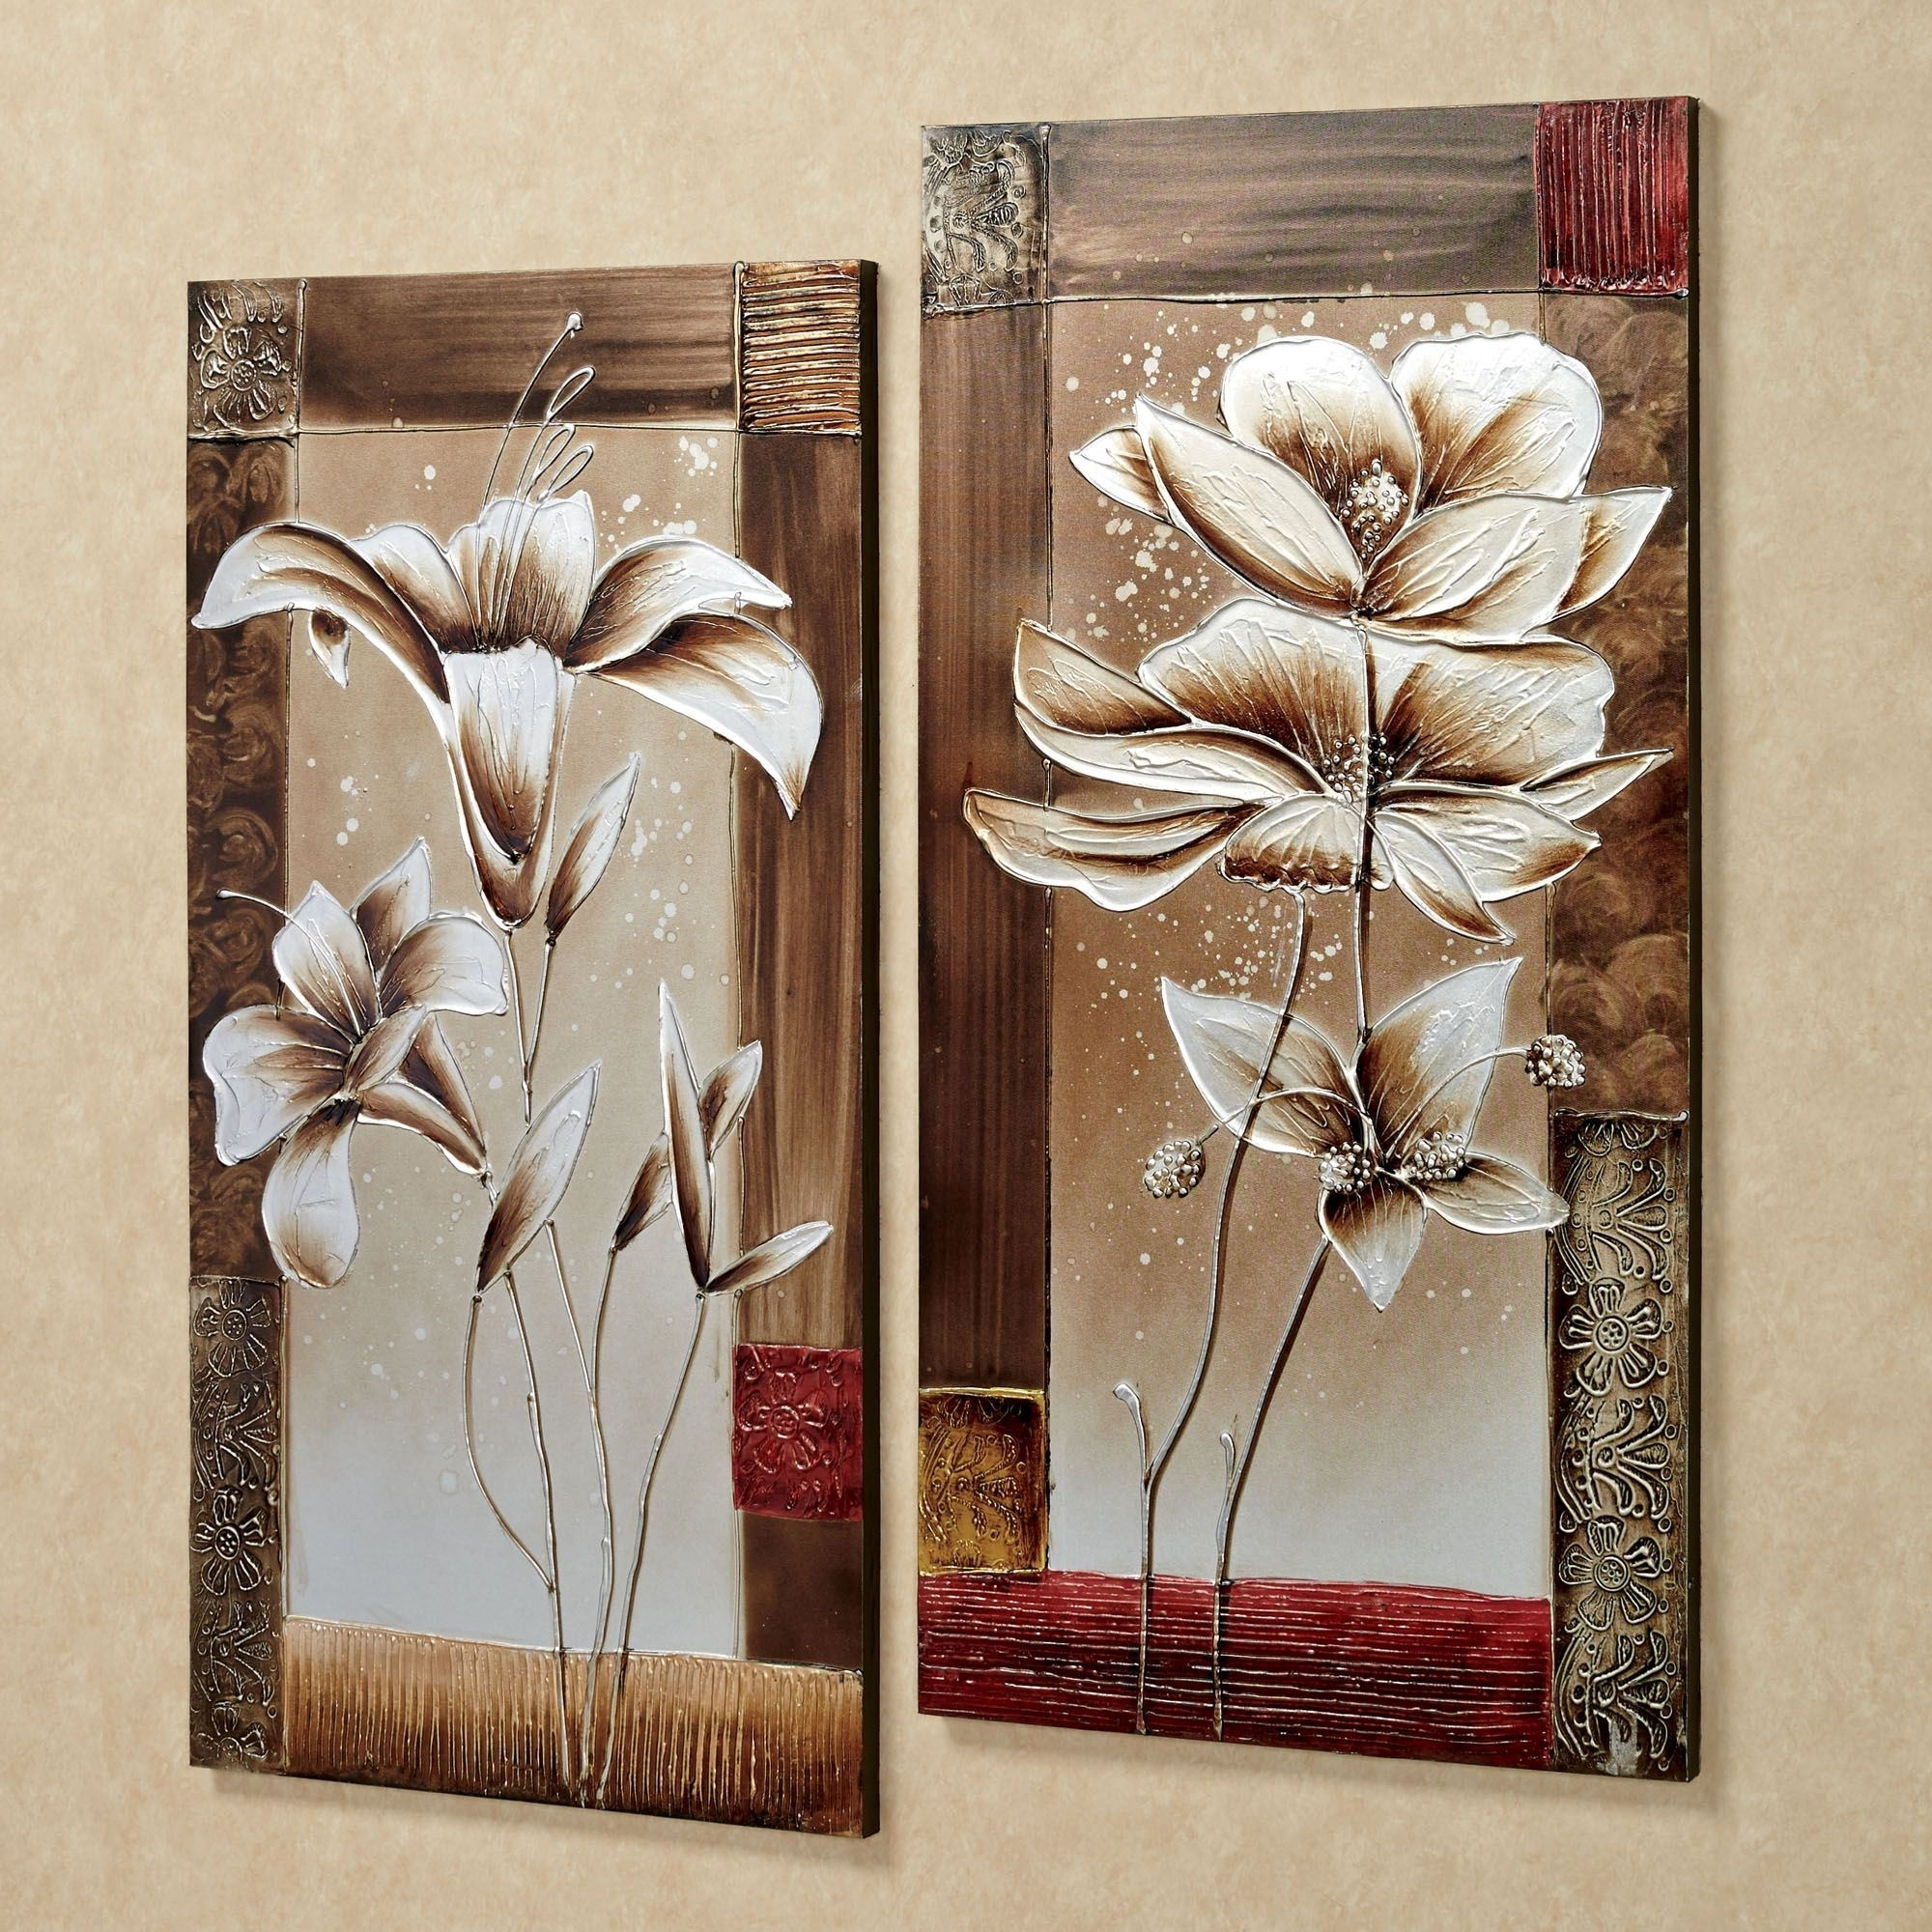 Petals Of Spring Floral Canvas Wall Art Set Regarding Most Recent Canvas Wall Art Of Flowers (View 8 of 15)